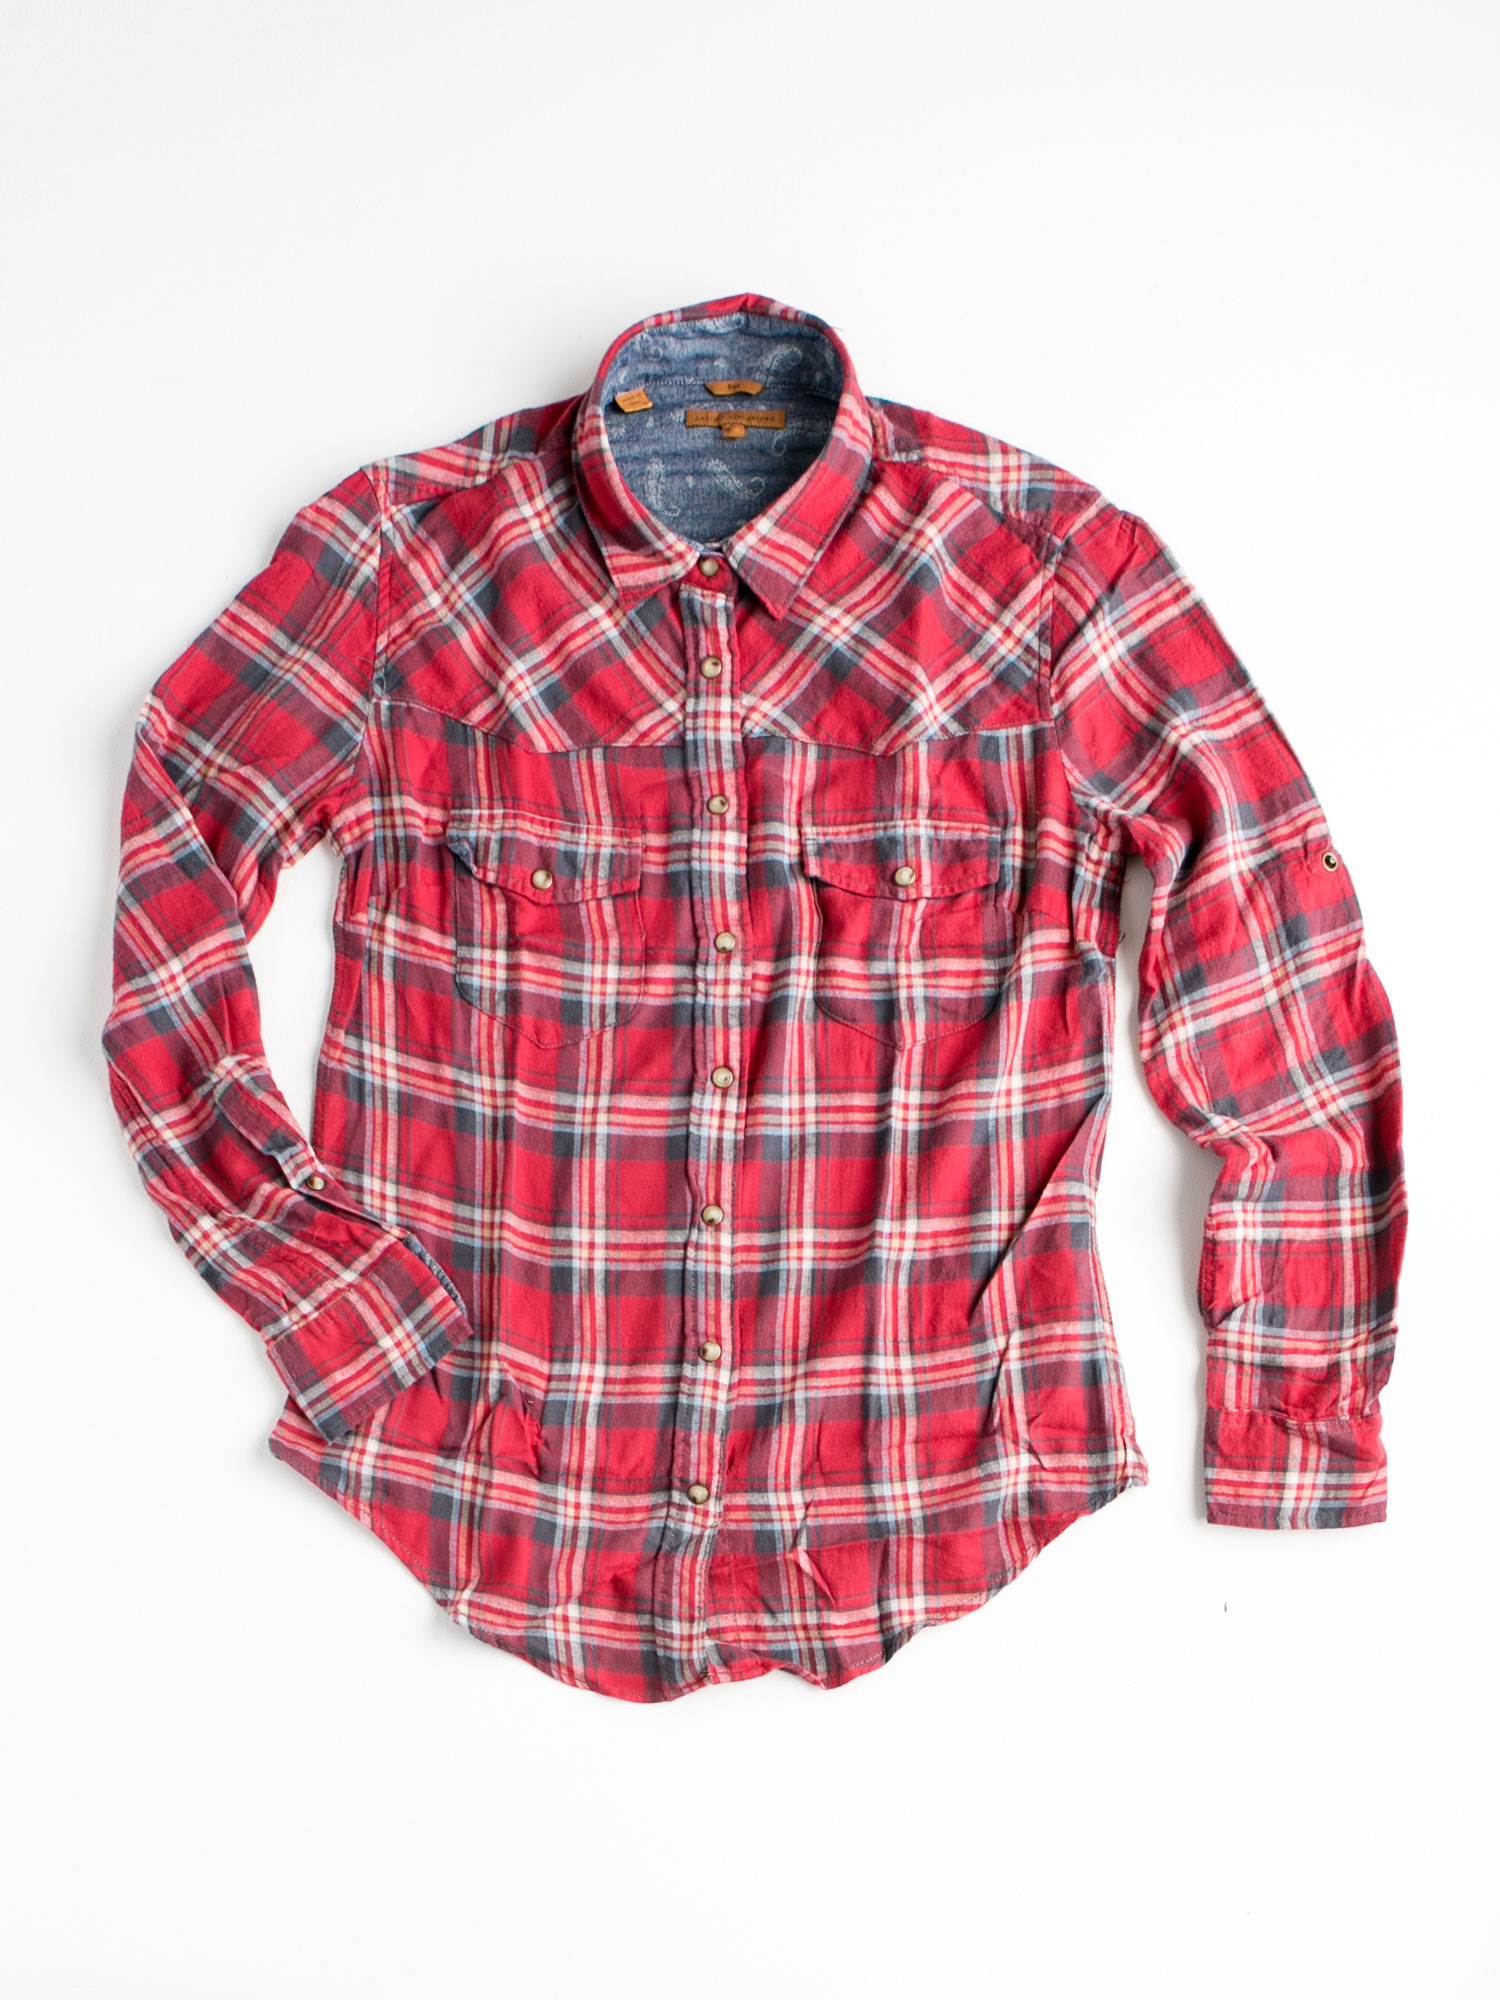 E Commerce Product Apparel Photography White Background Dallas Texas  Plaid Shirt